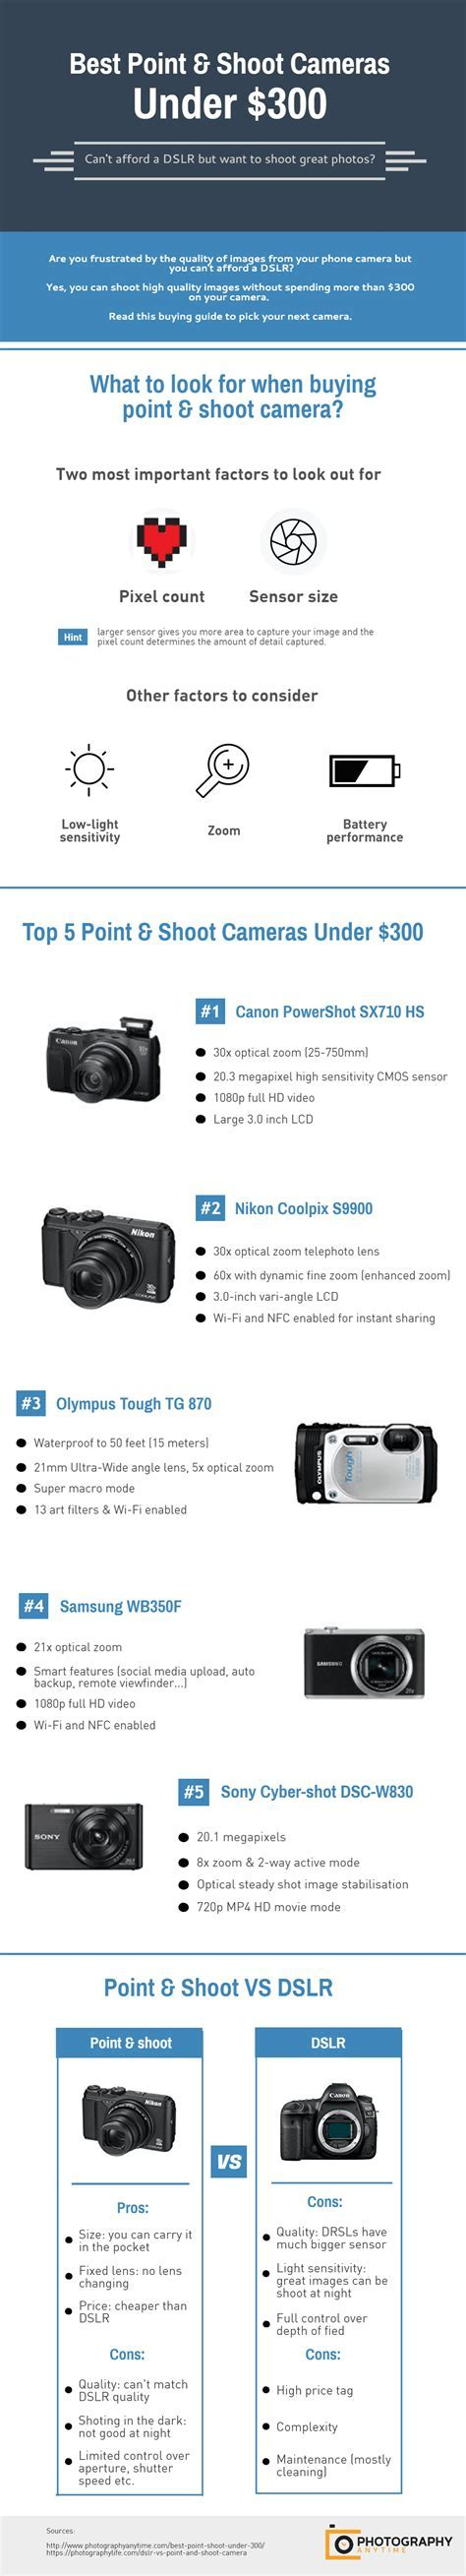 [Infographic] Best Budget Point And Shoot Cameras